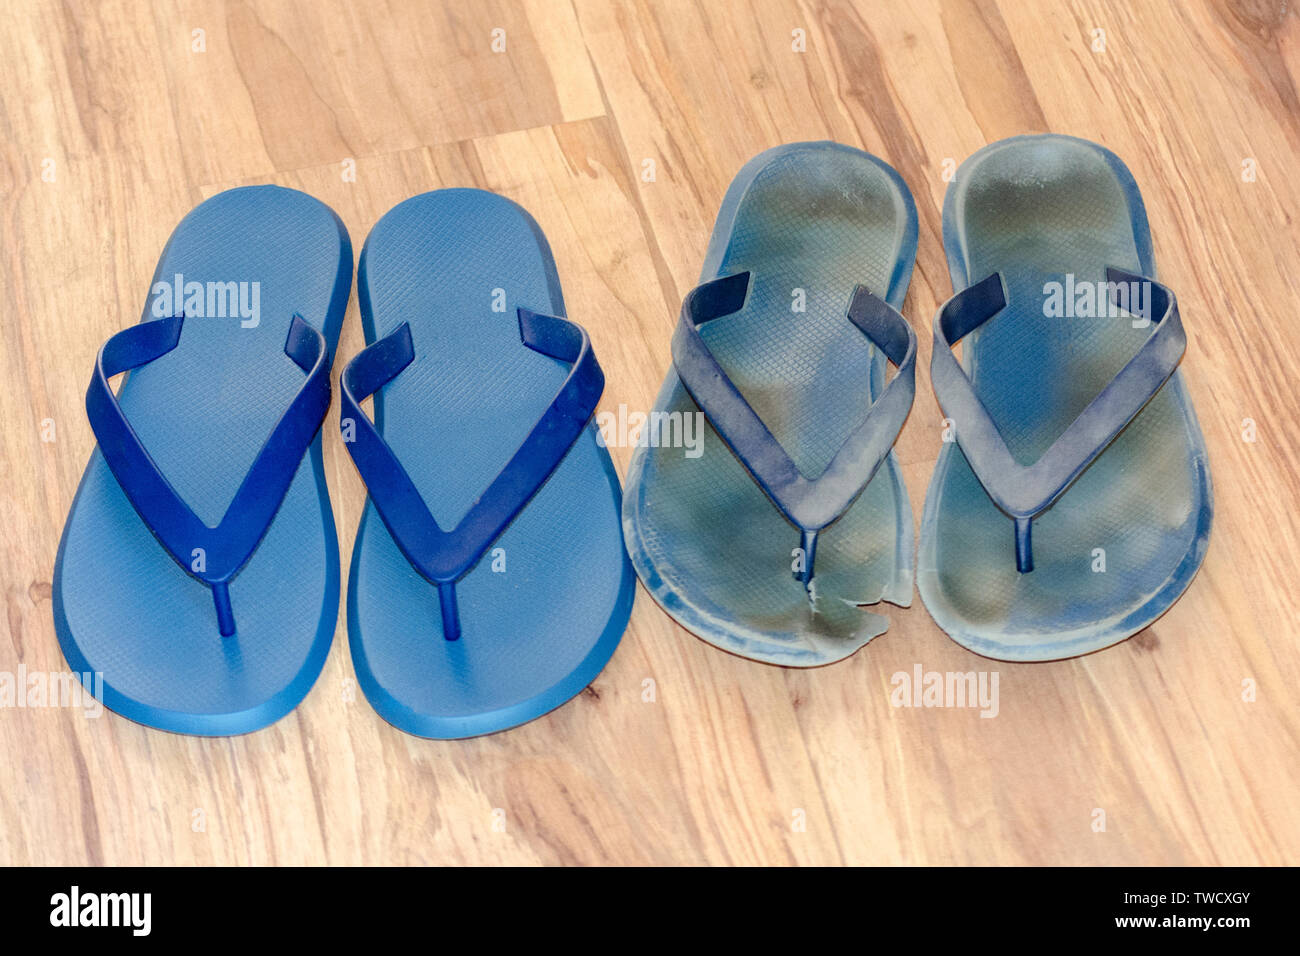 New and old dirty flip flops on light brown floor. Two pairs new and worn out shoes. Blue sandals isolated on wood background. Before and after concep - Stock Image